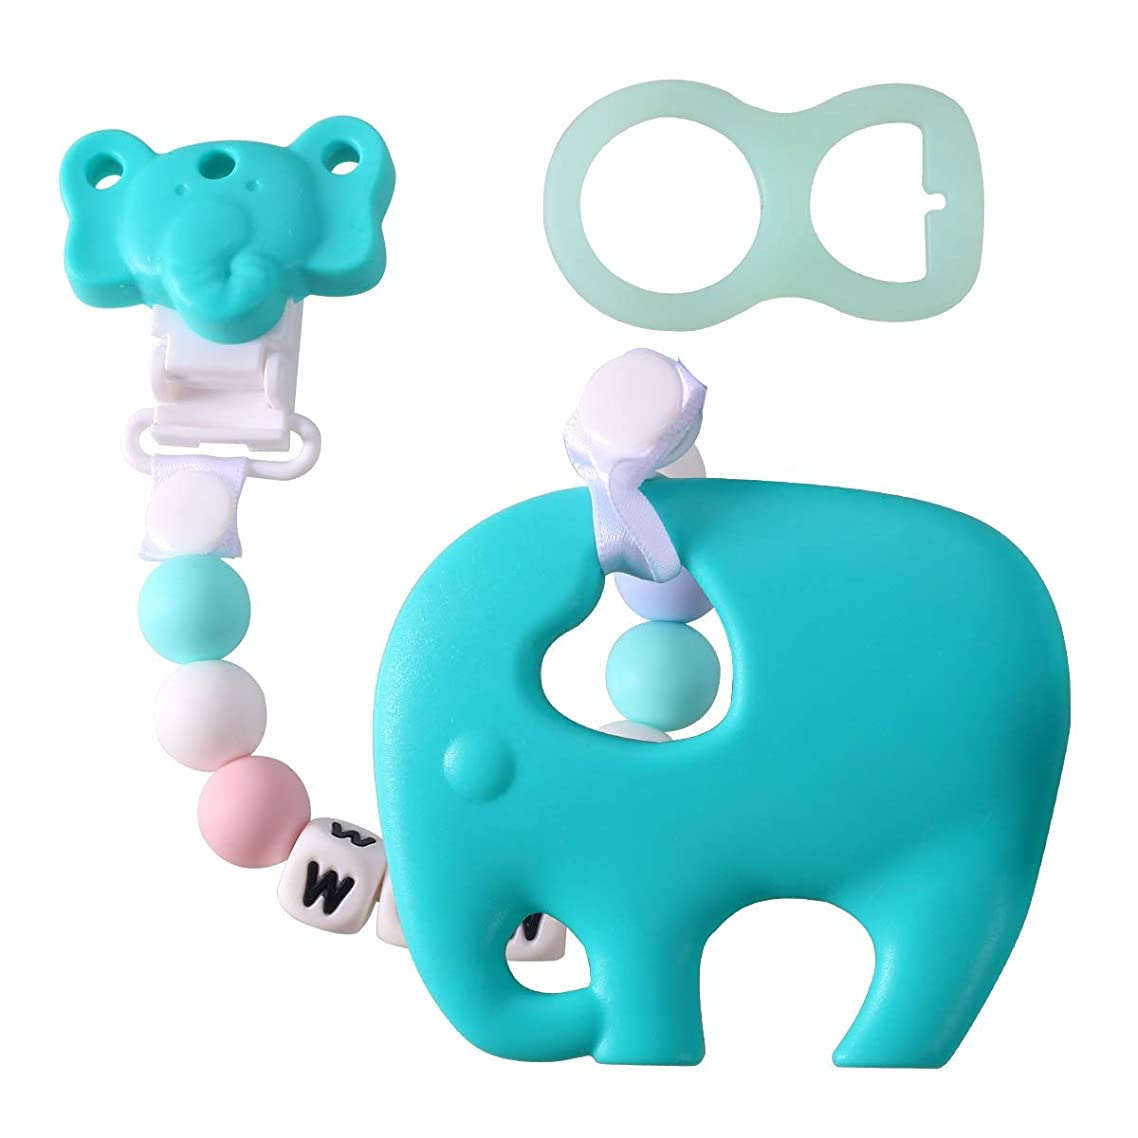 Baby Teething Toys Silicone Elephant Teether With Pacifier Clip Holder Set Infant Unisex Chew For Newborn Babies Shower Gift